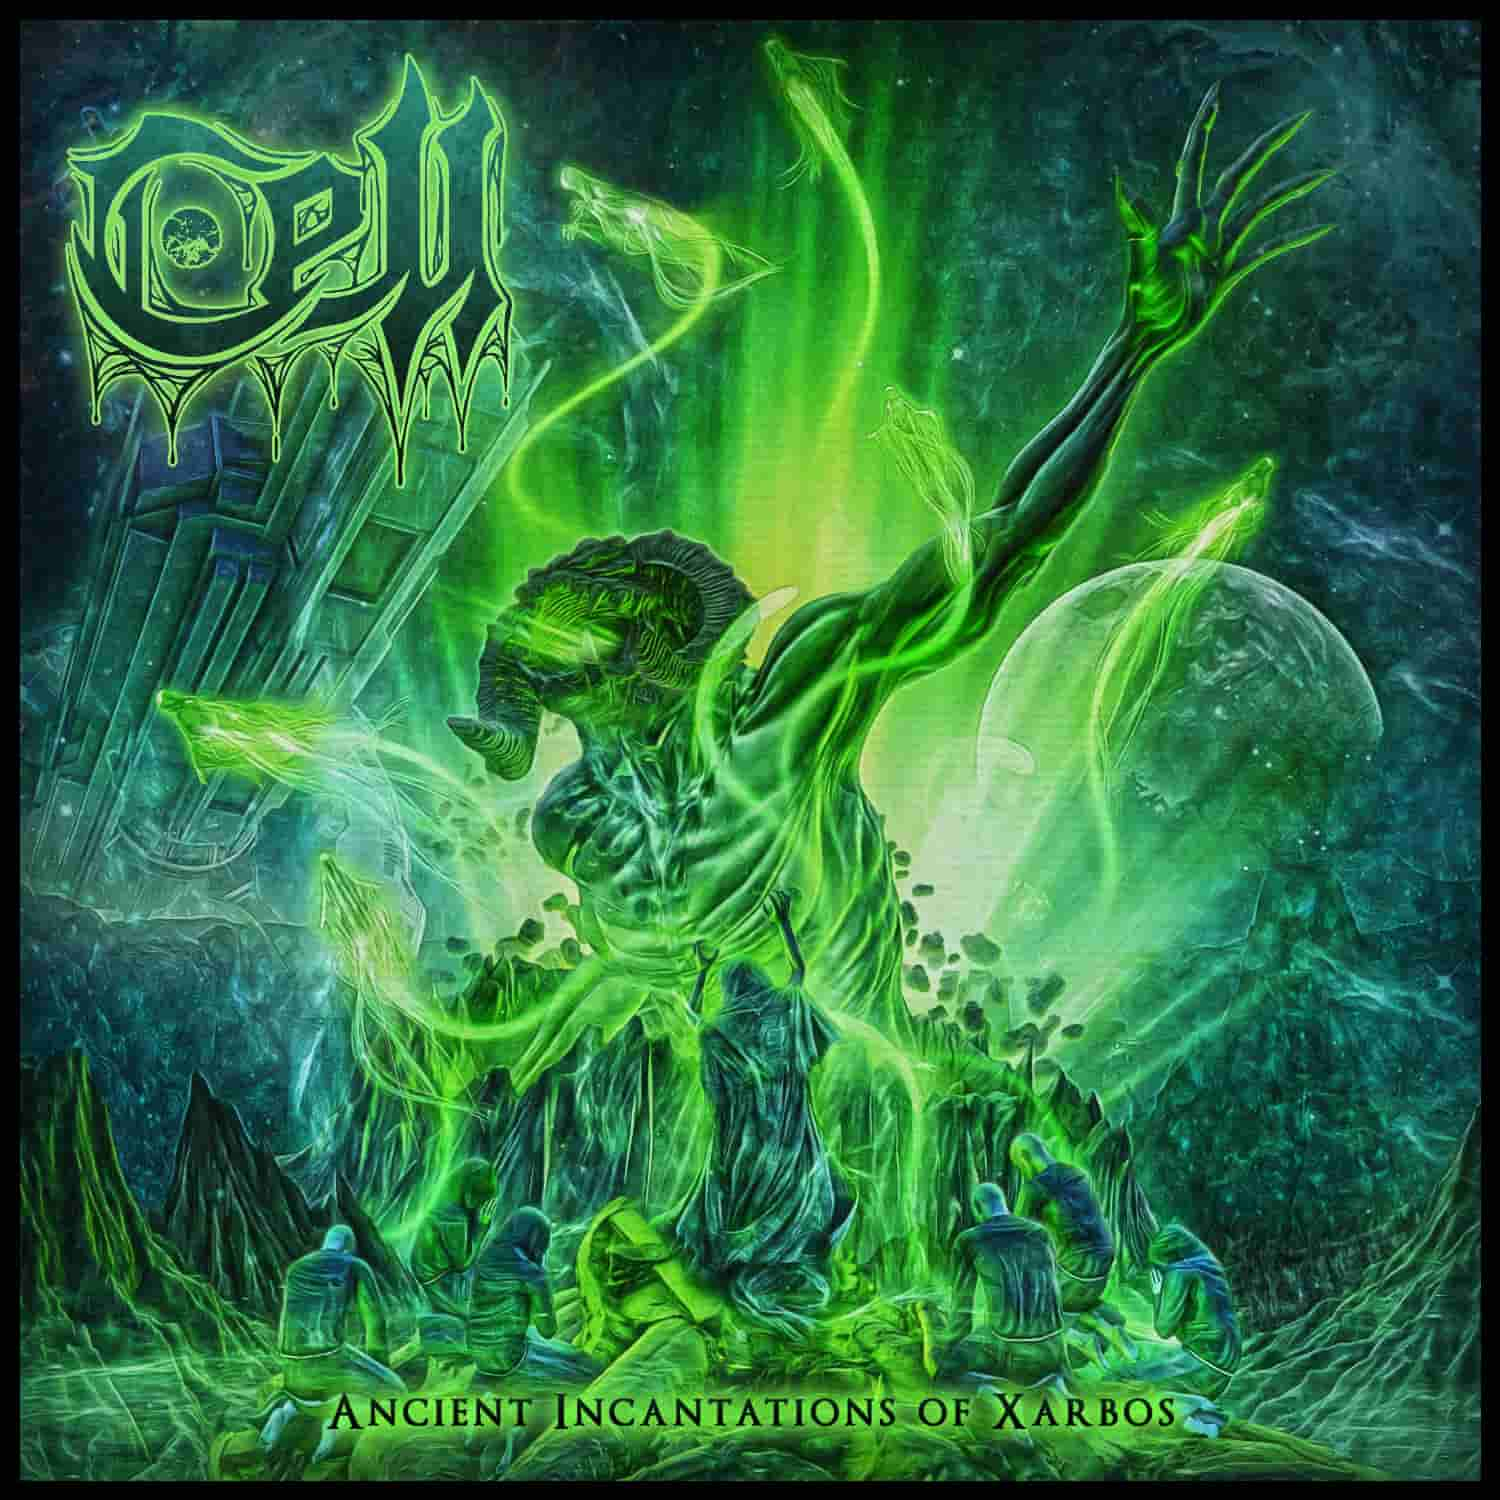 CELL – ANCIENT INCANTATIONS OF XARBOS